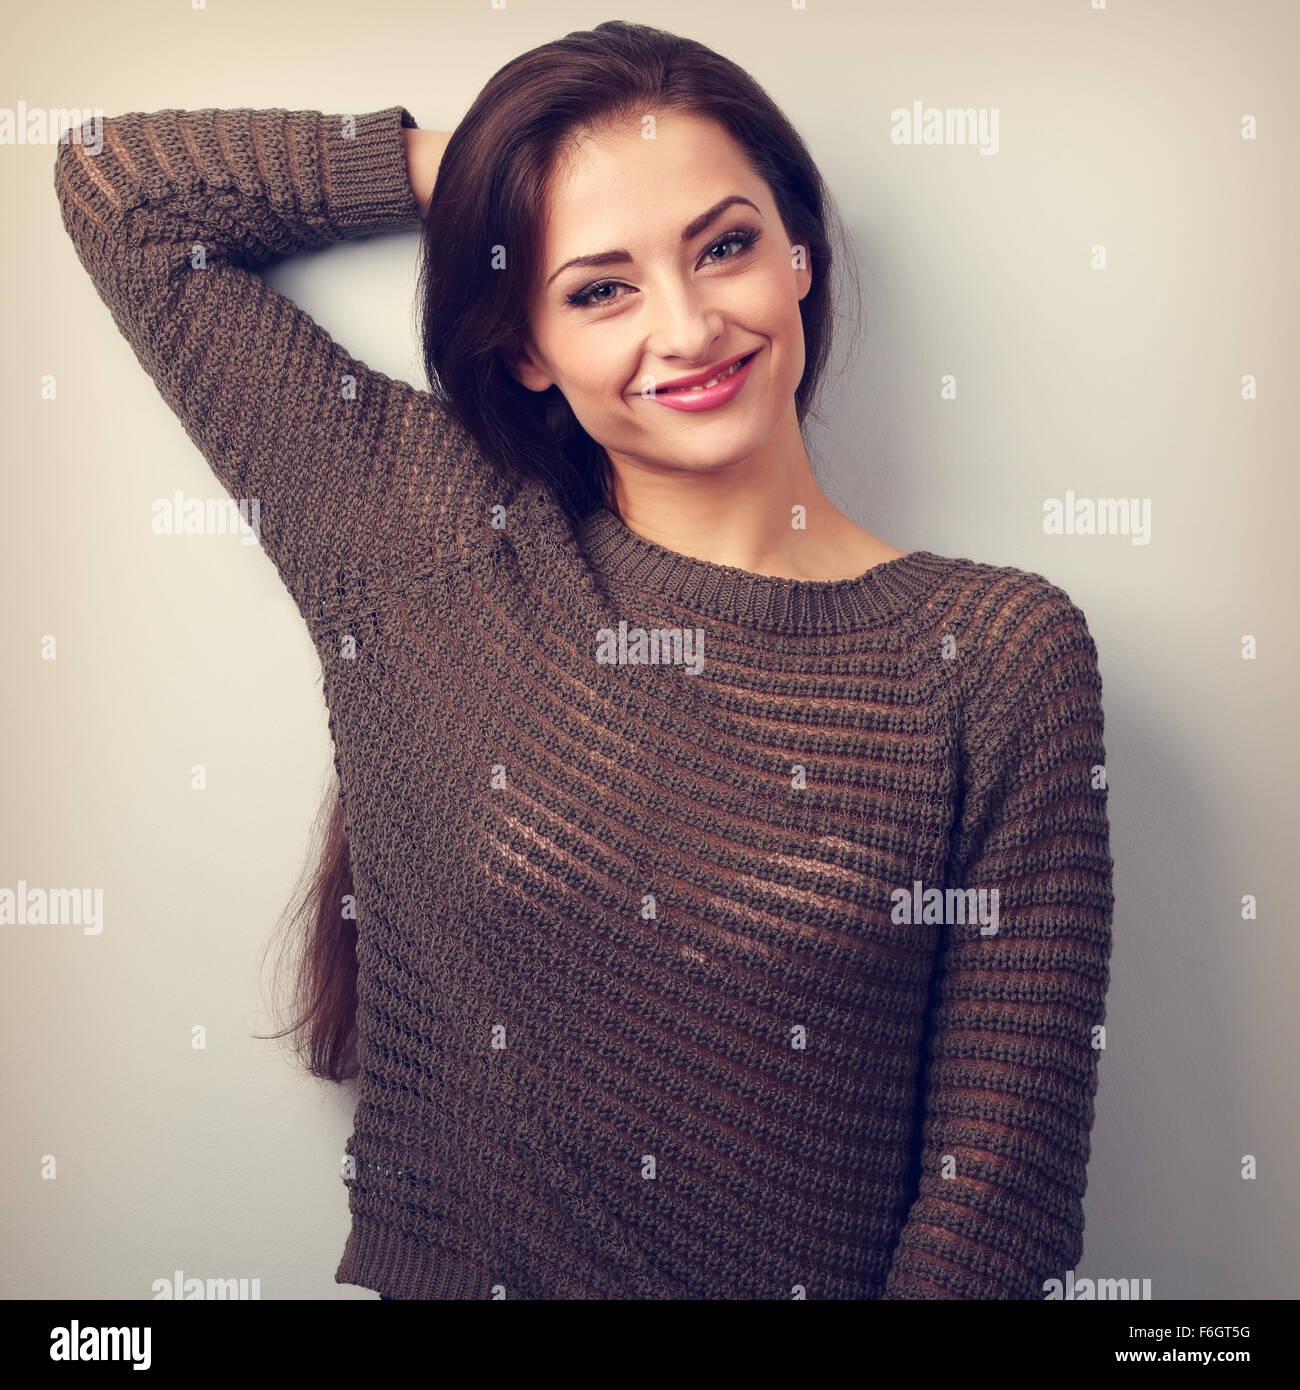 Heureux pointing émotionnelle woman smiling in pull-over chaud. Vintage portrait Photo Stock